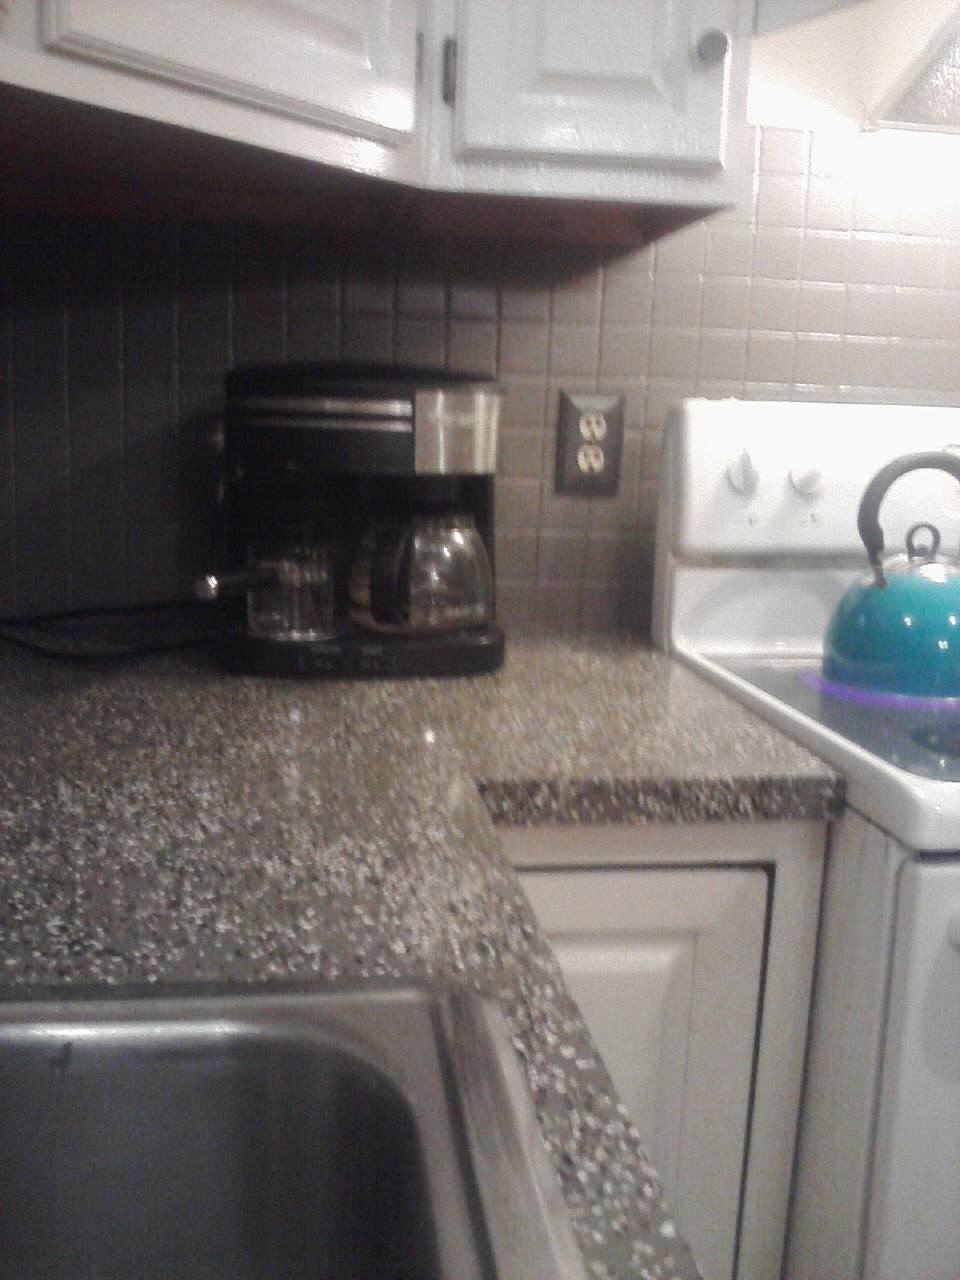 Linoleum Kitchen Countertops : covered my old pink linoleum with countertop paint, tossed paint ...